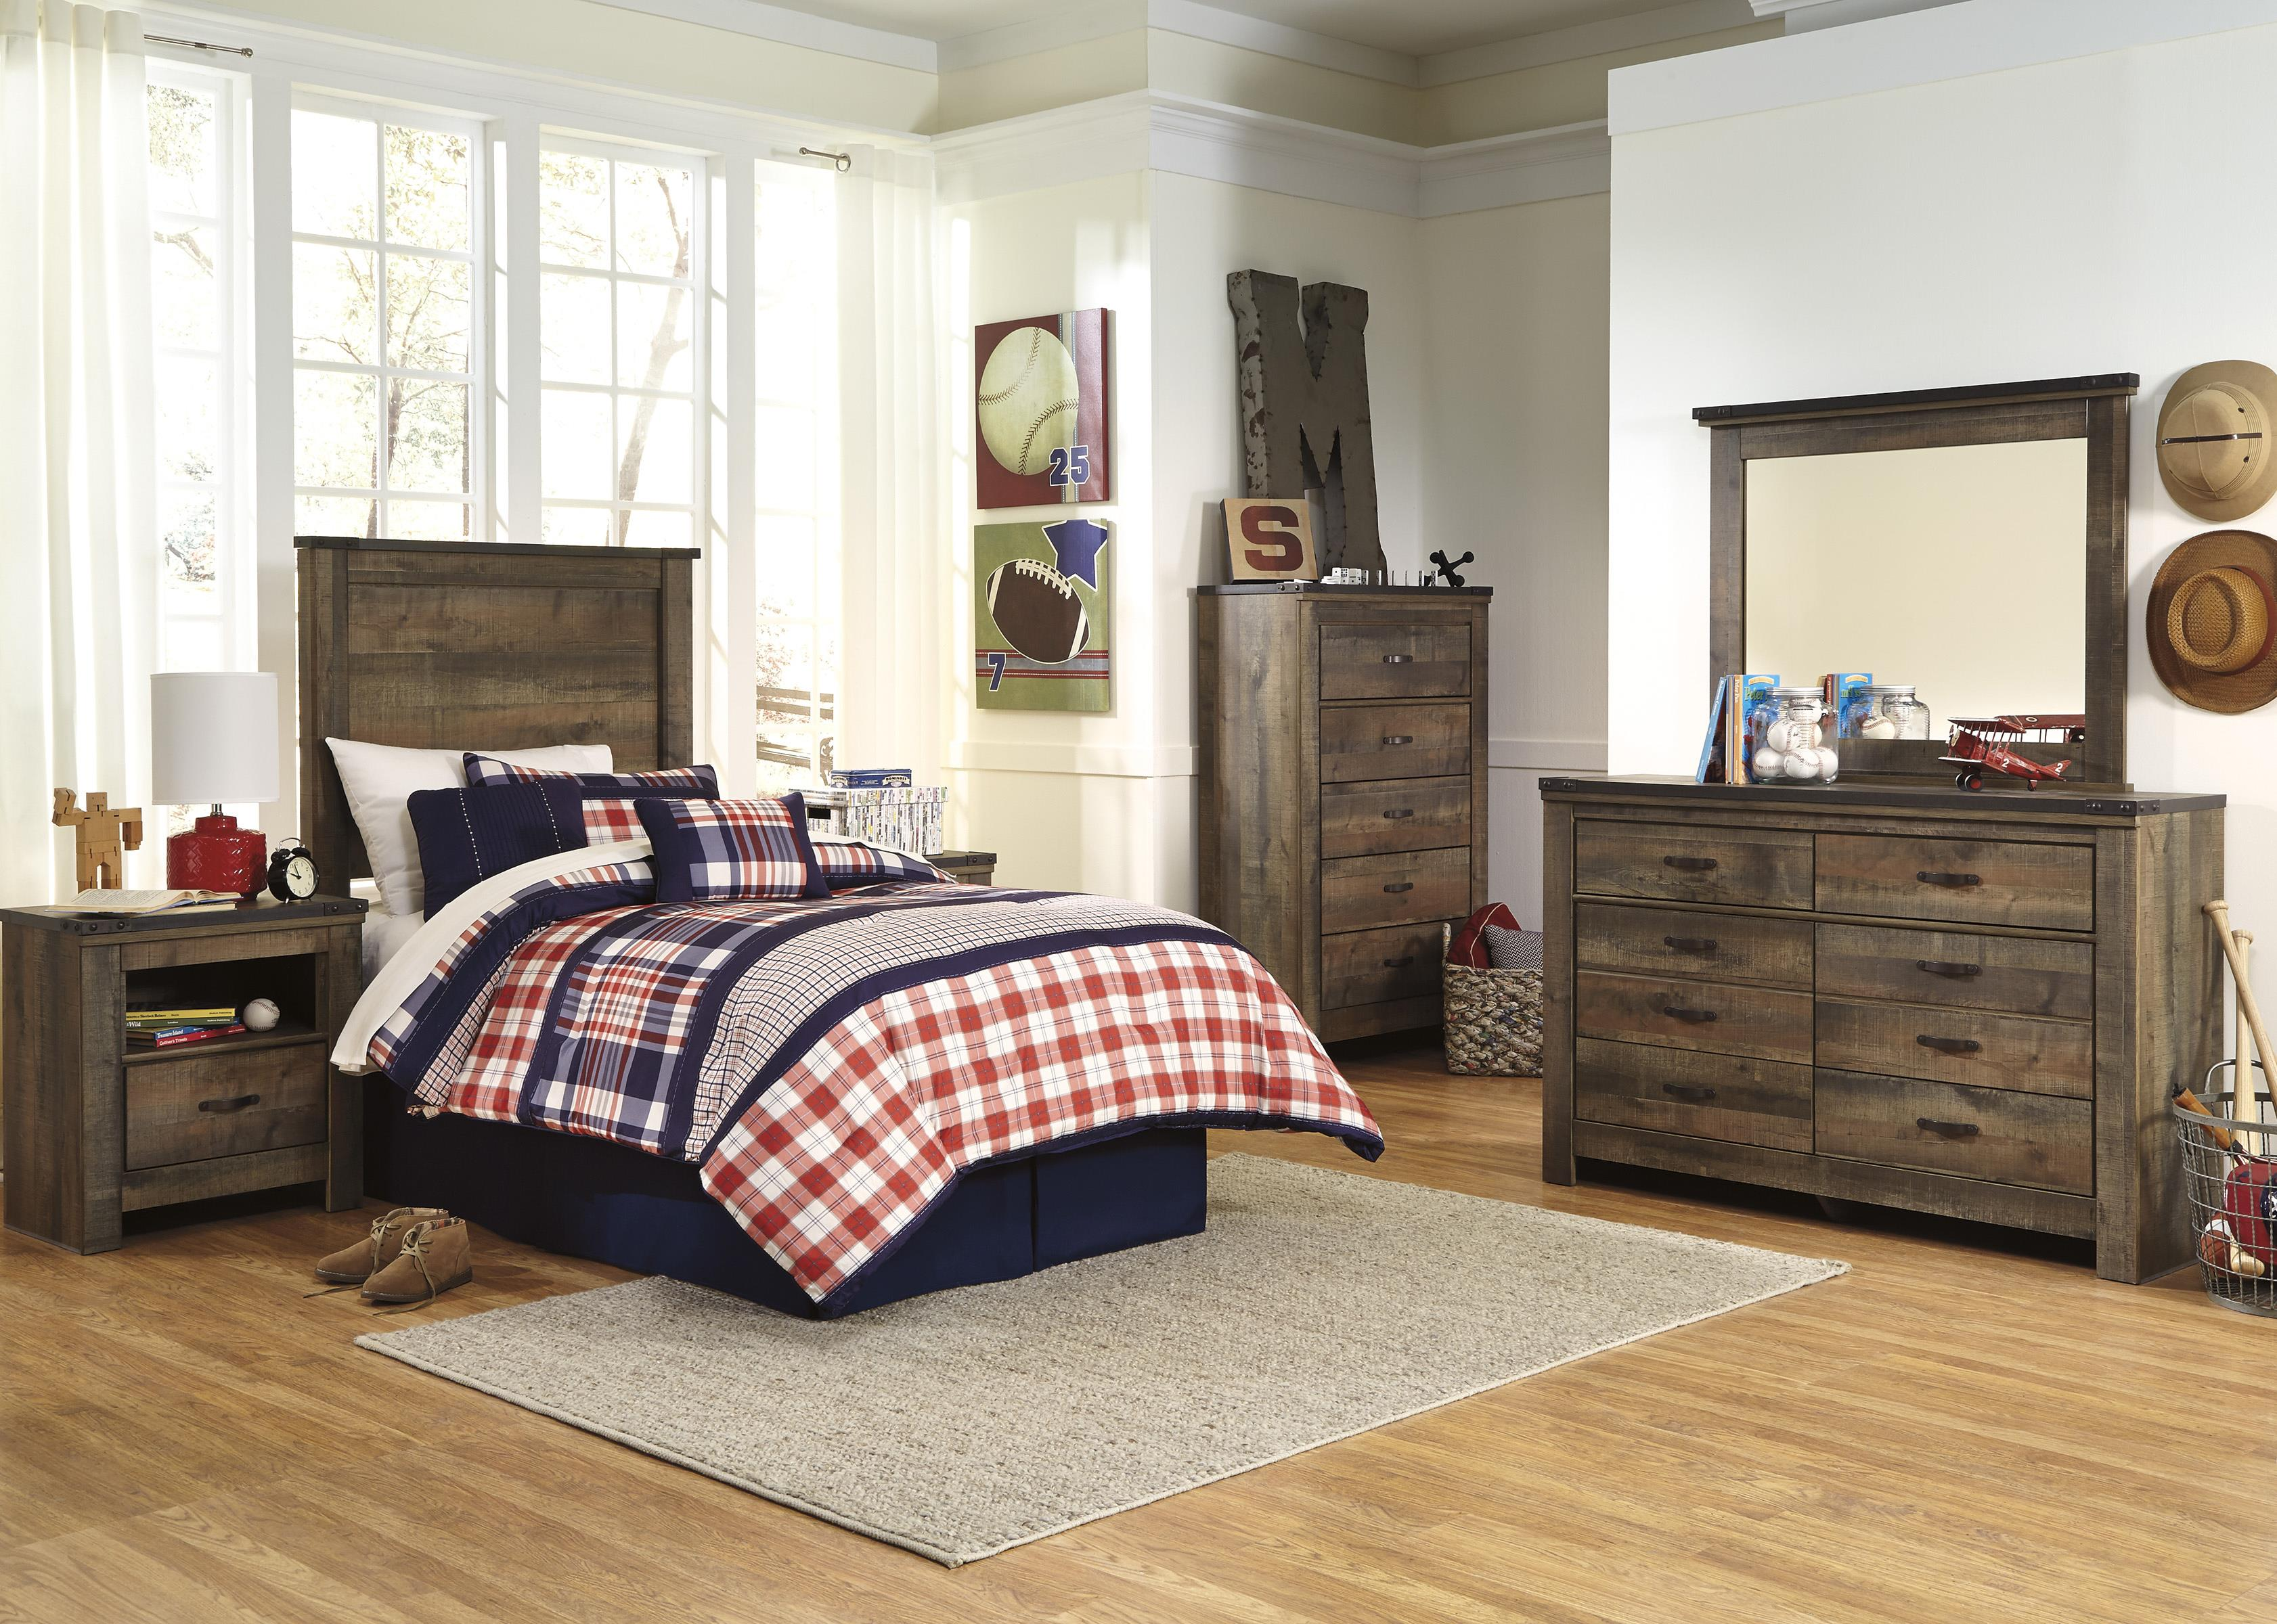 Trinell Twin Bedroom Group by Signature Design by Ashley at Household Furniture